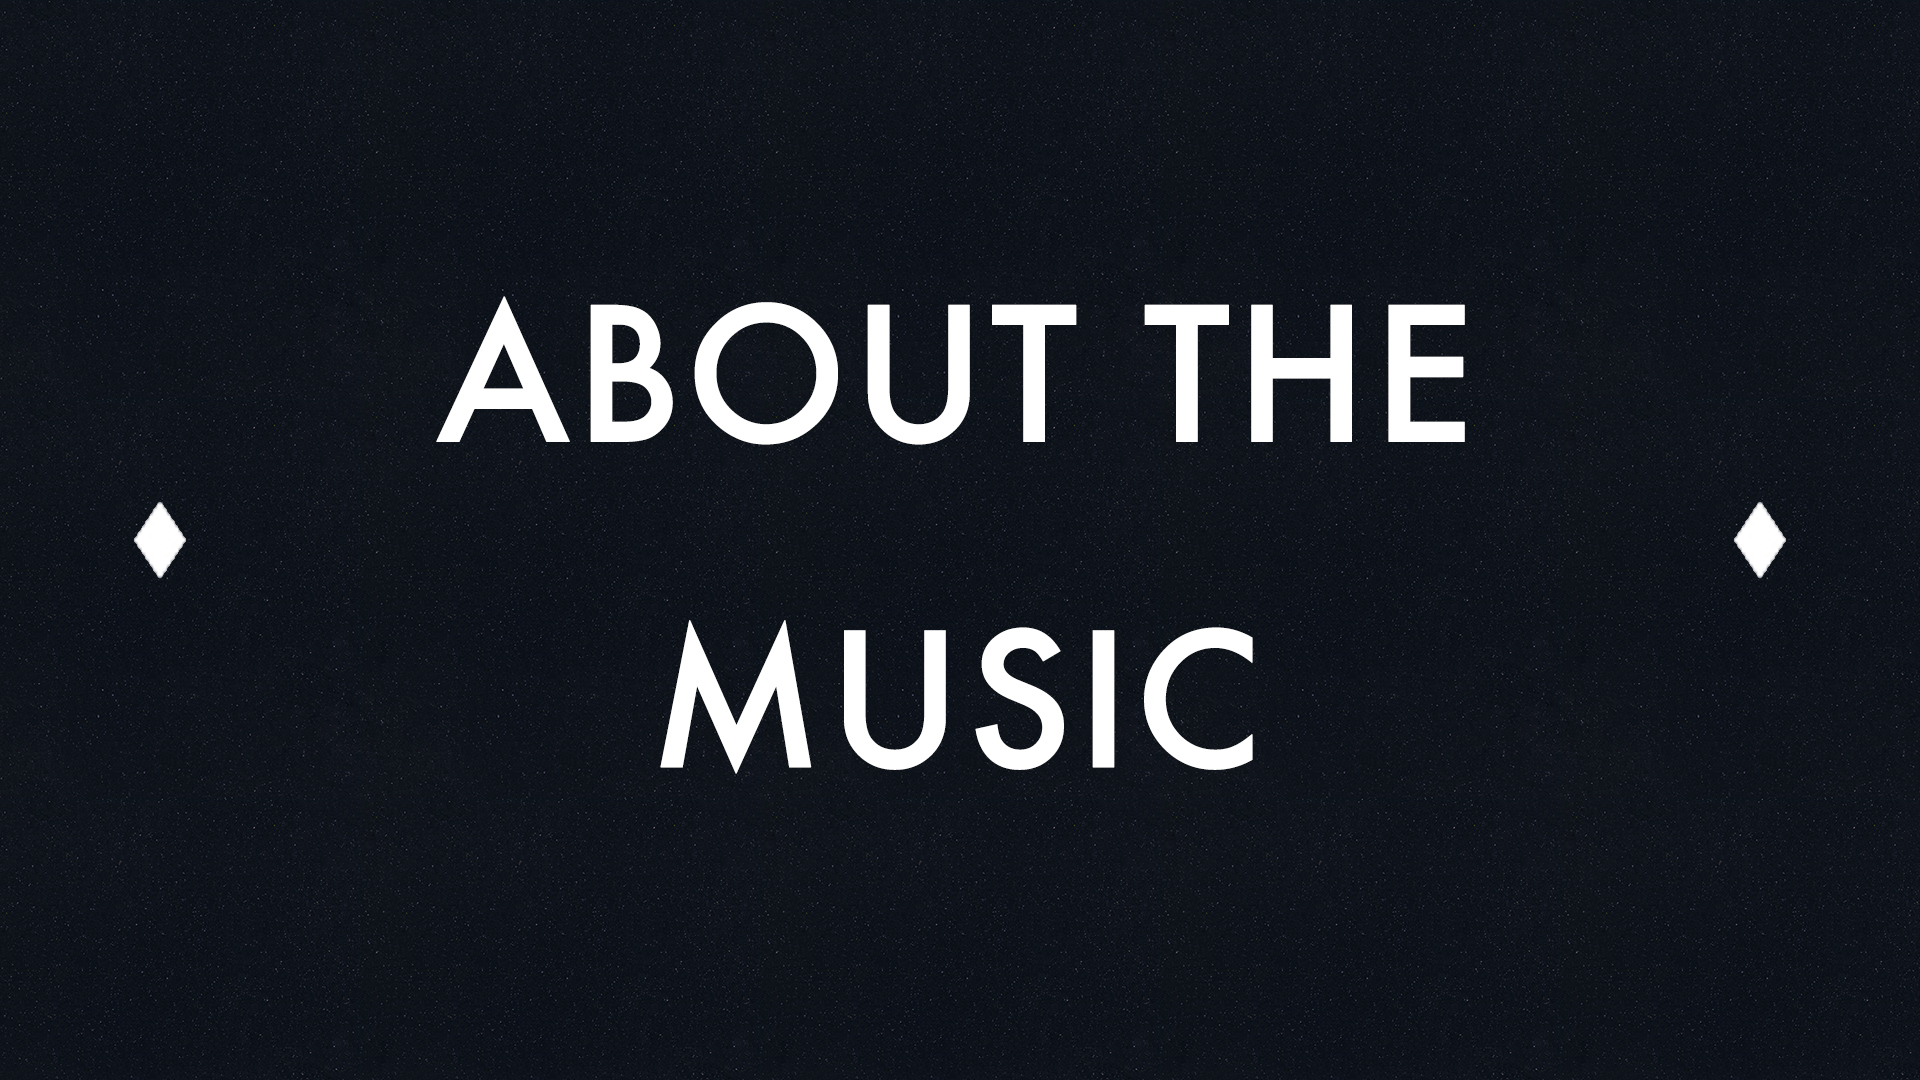 About The Music